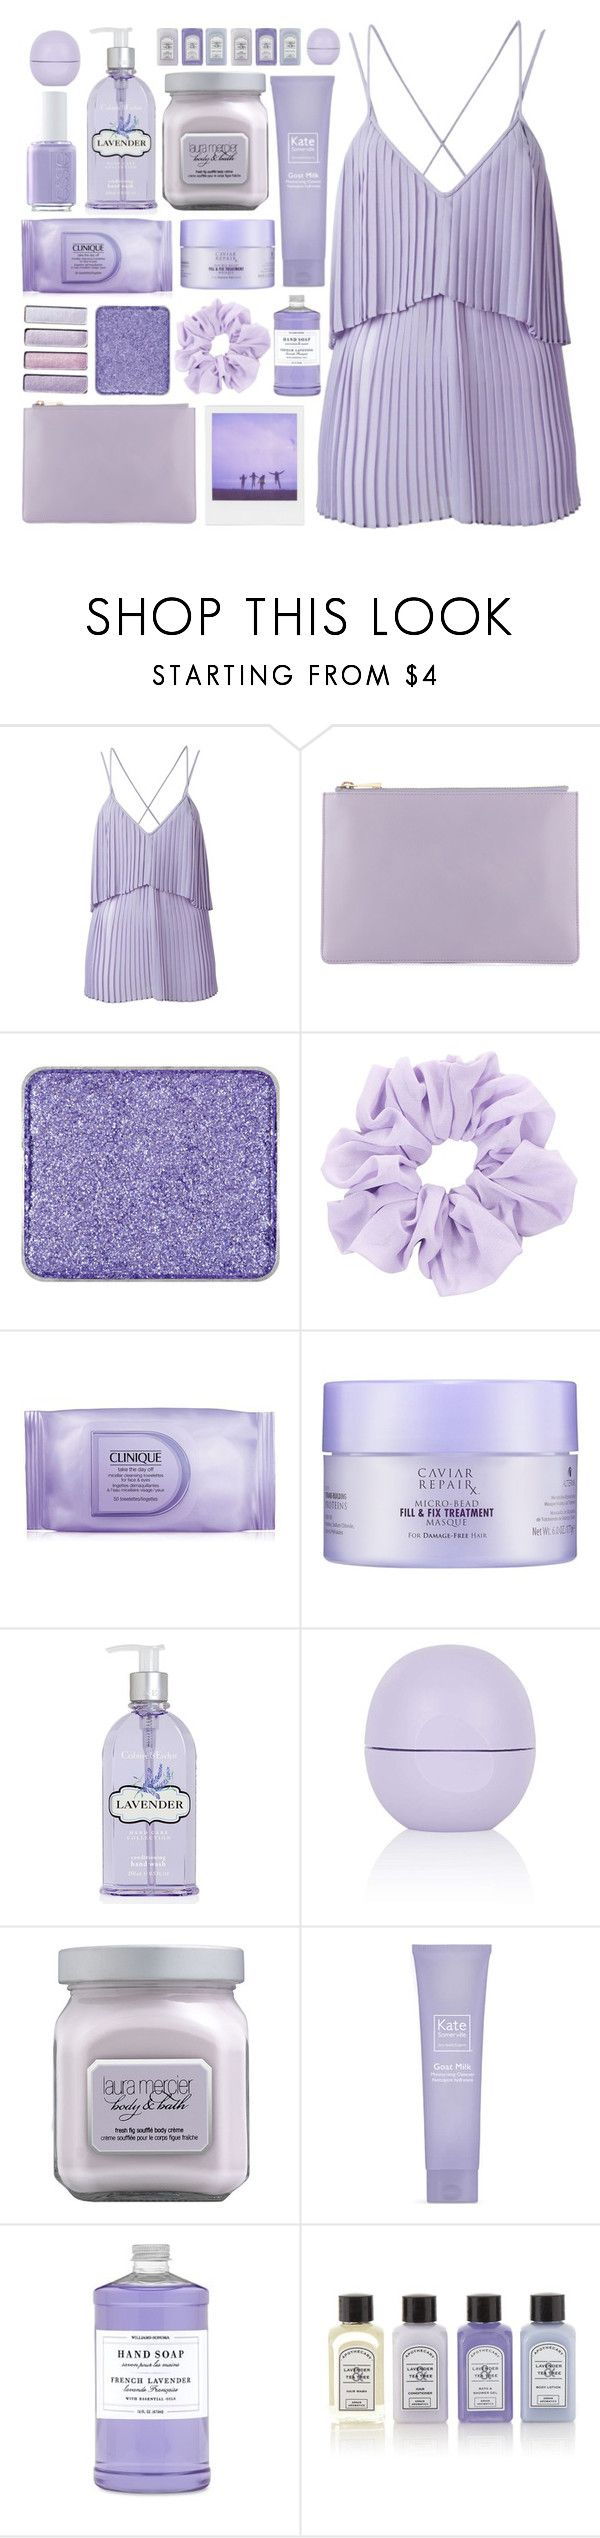 """""""The Brightside"""" by kara-burke ❤ liked on Polyvore featuring Elie Saab, shu uemura, Essie, Clinique, Alterna, Crabtree & Evelyn, Topshop, Laura Mercier, Kate Somerville and Williams-Sonoma"""